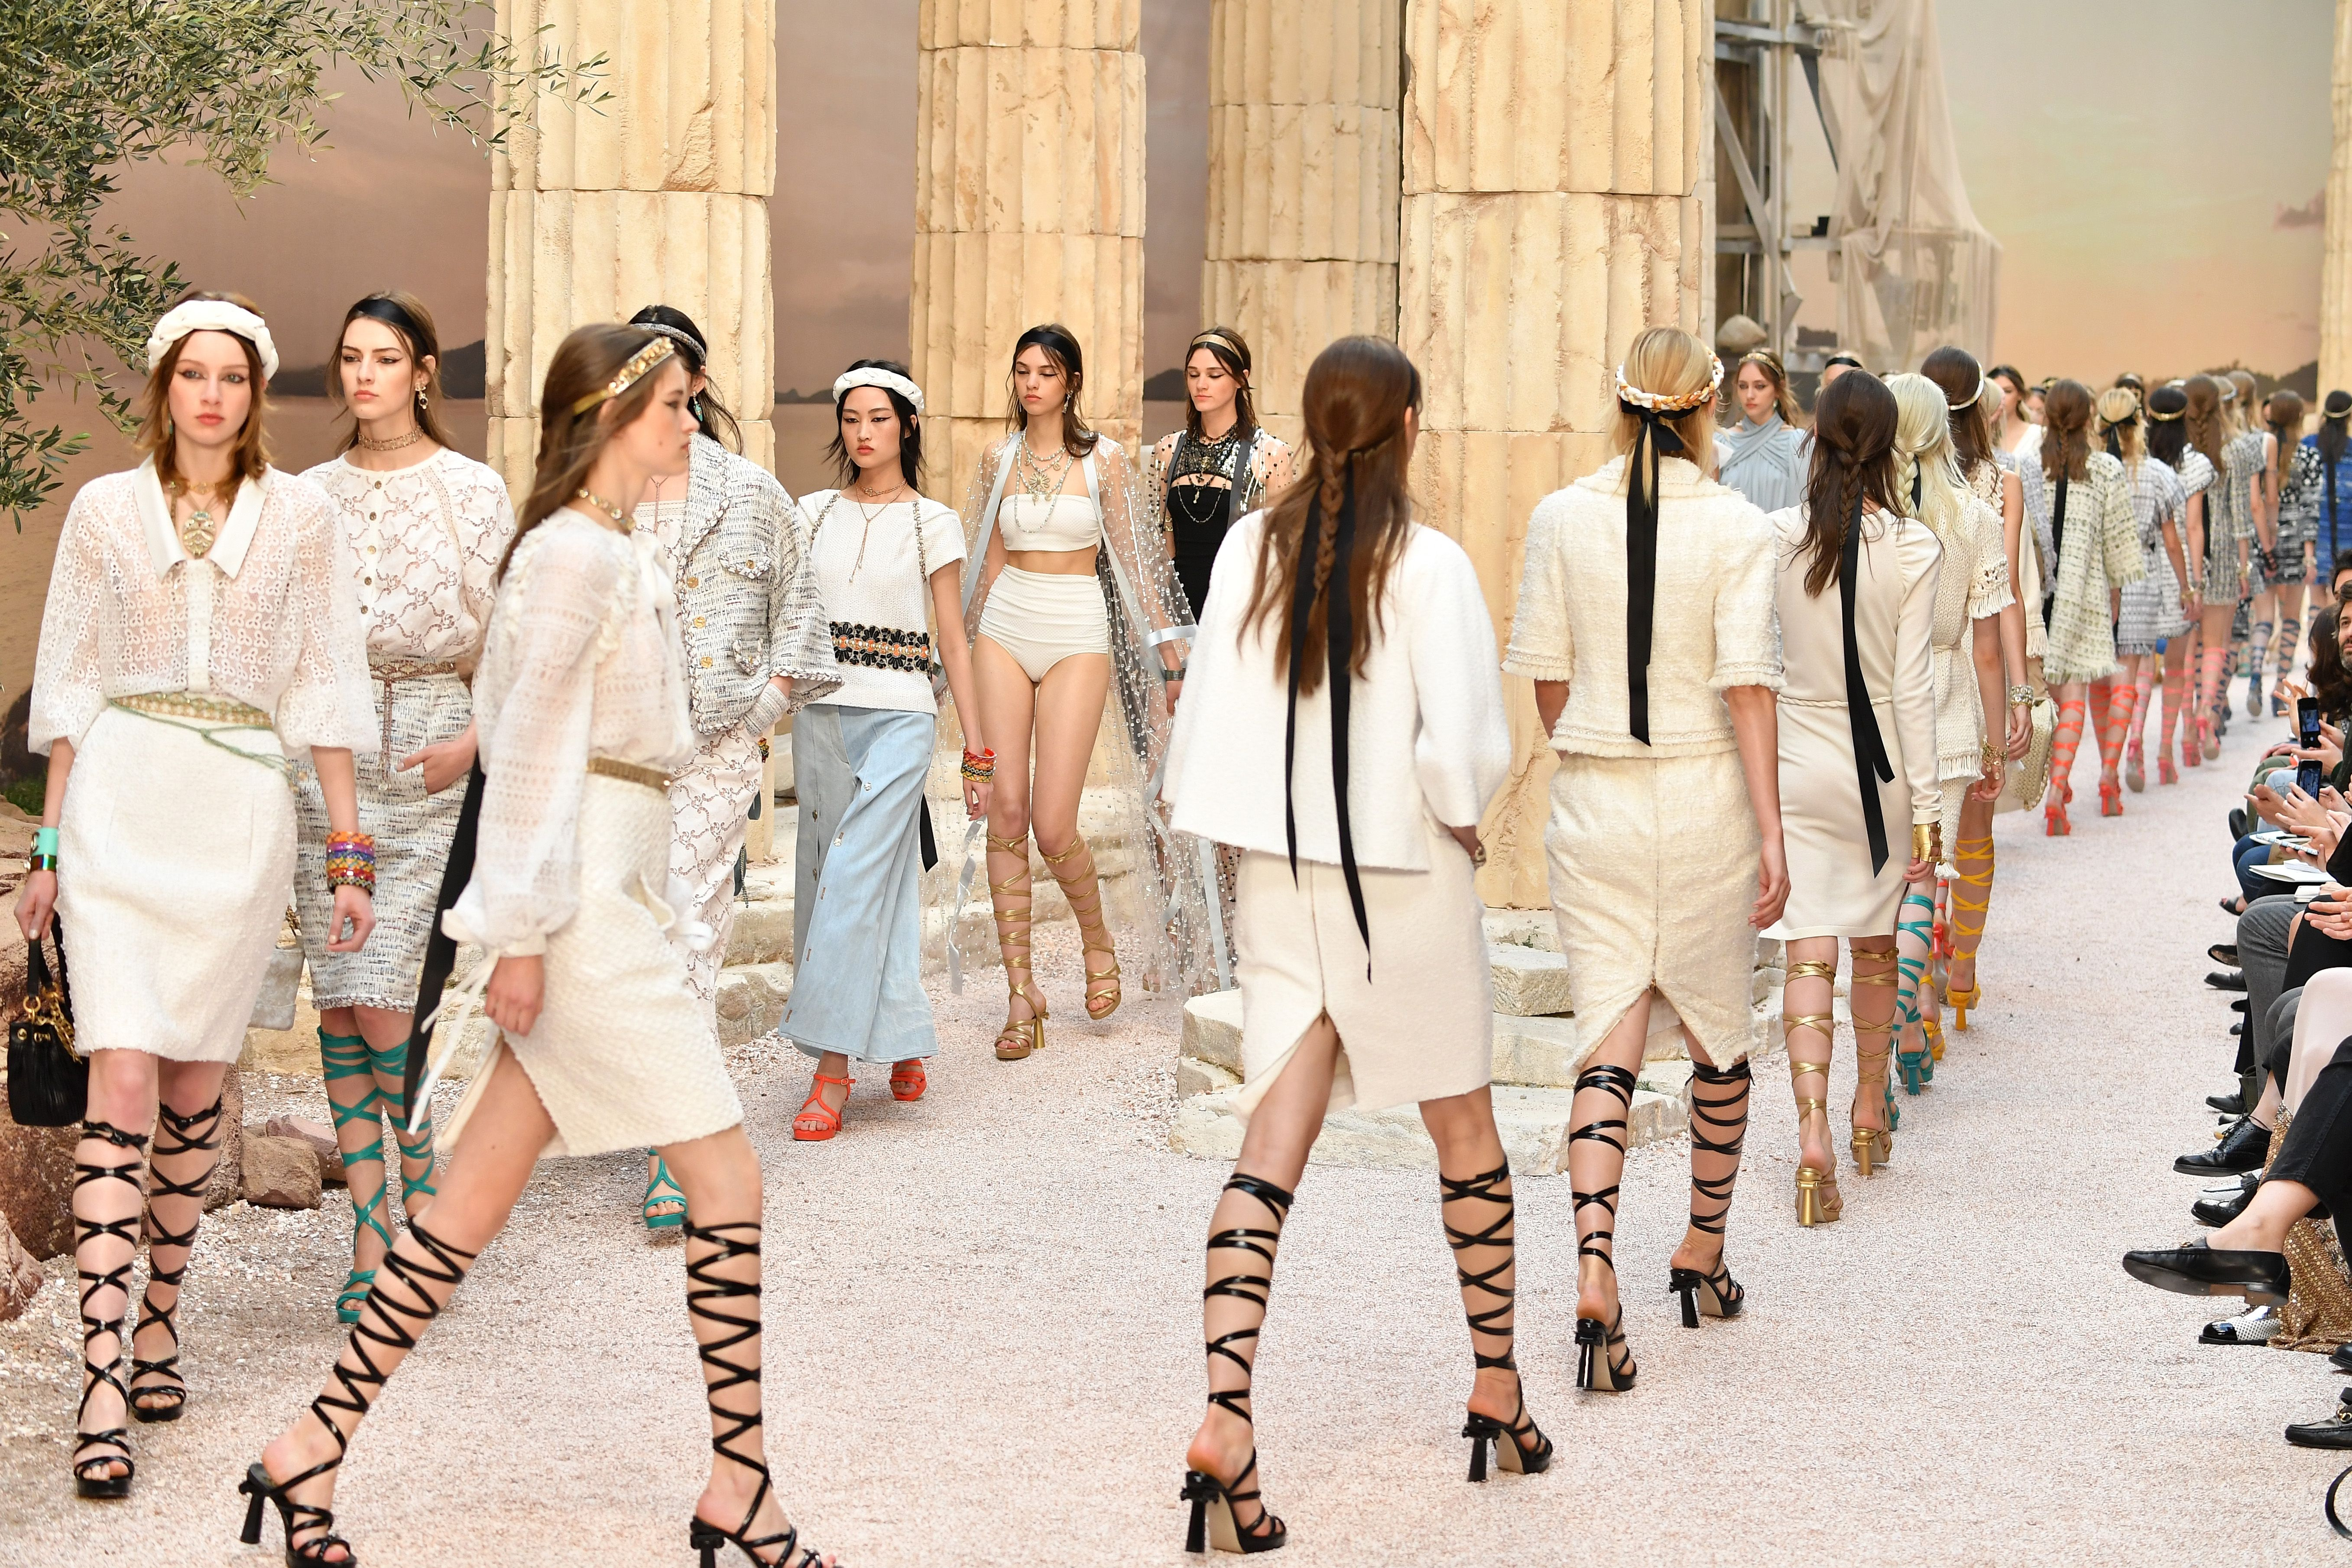 Gladiator Sandals Never Go Out of Style